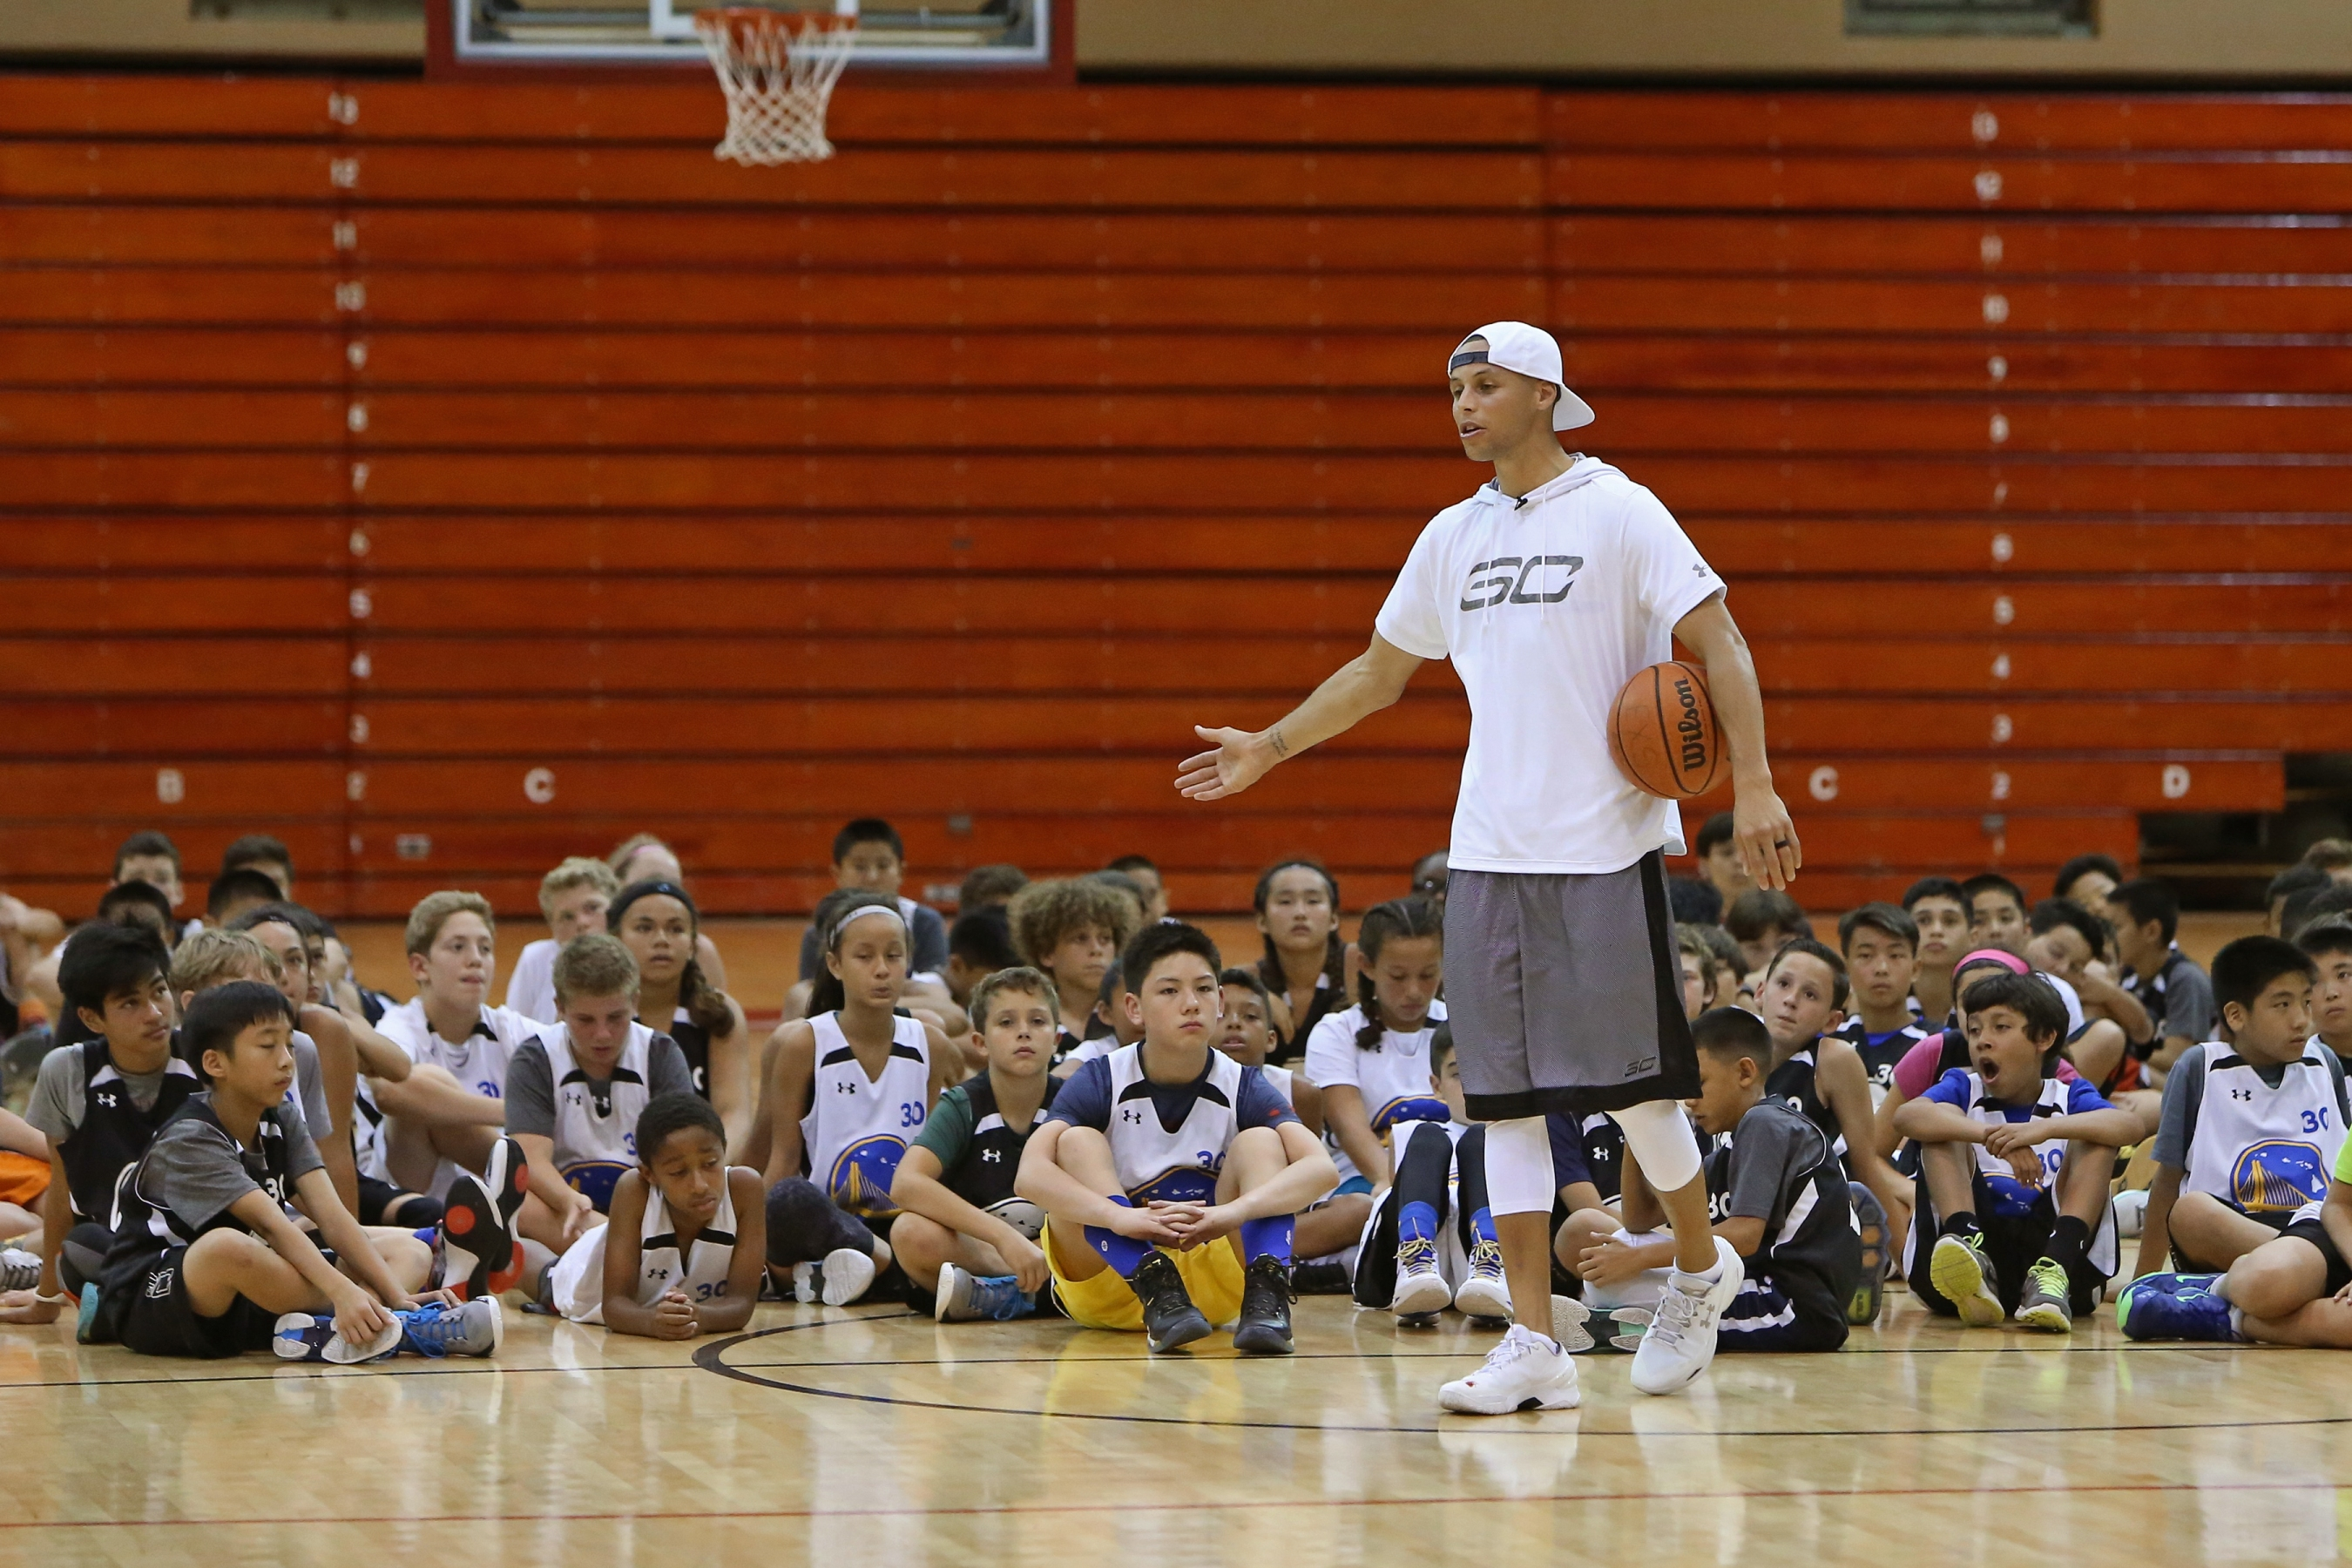 d208c86a08f Stephen Curry's basketball camps